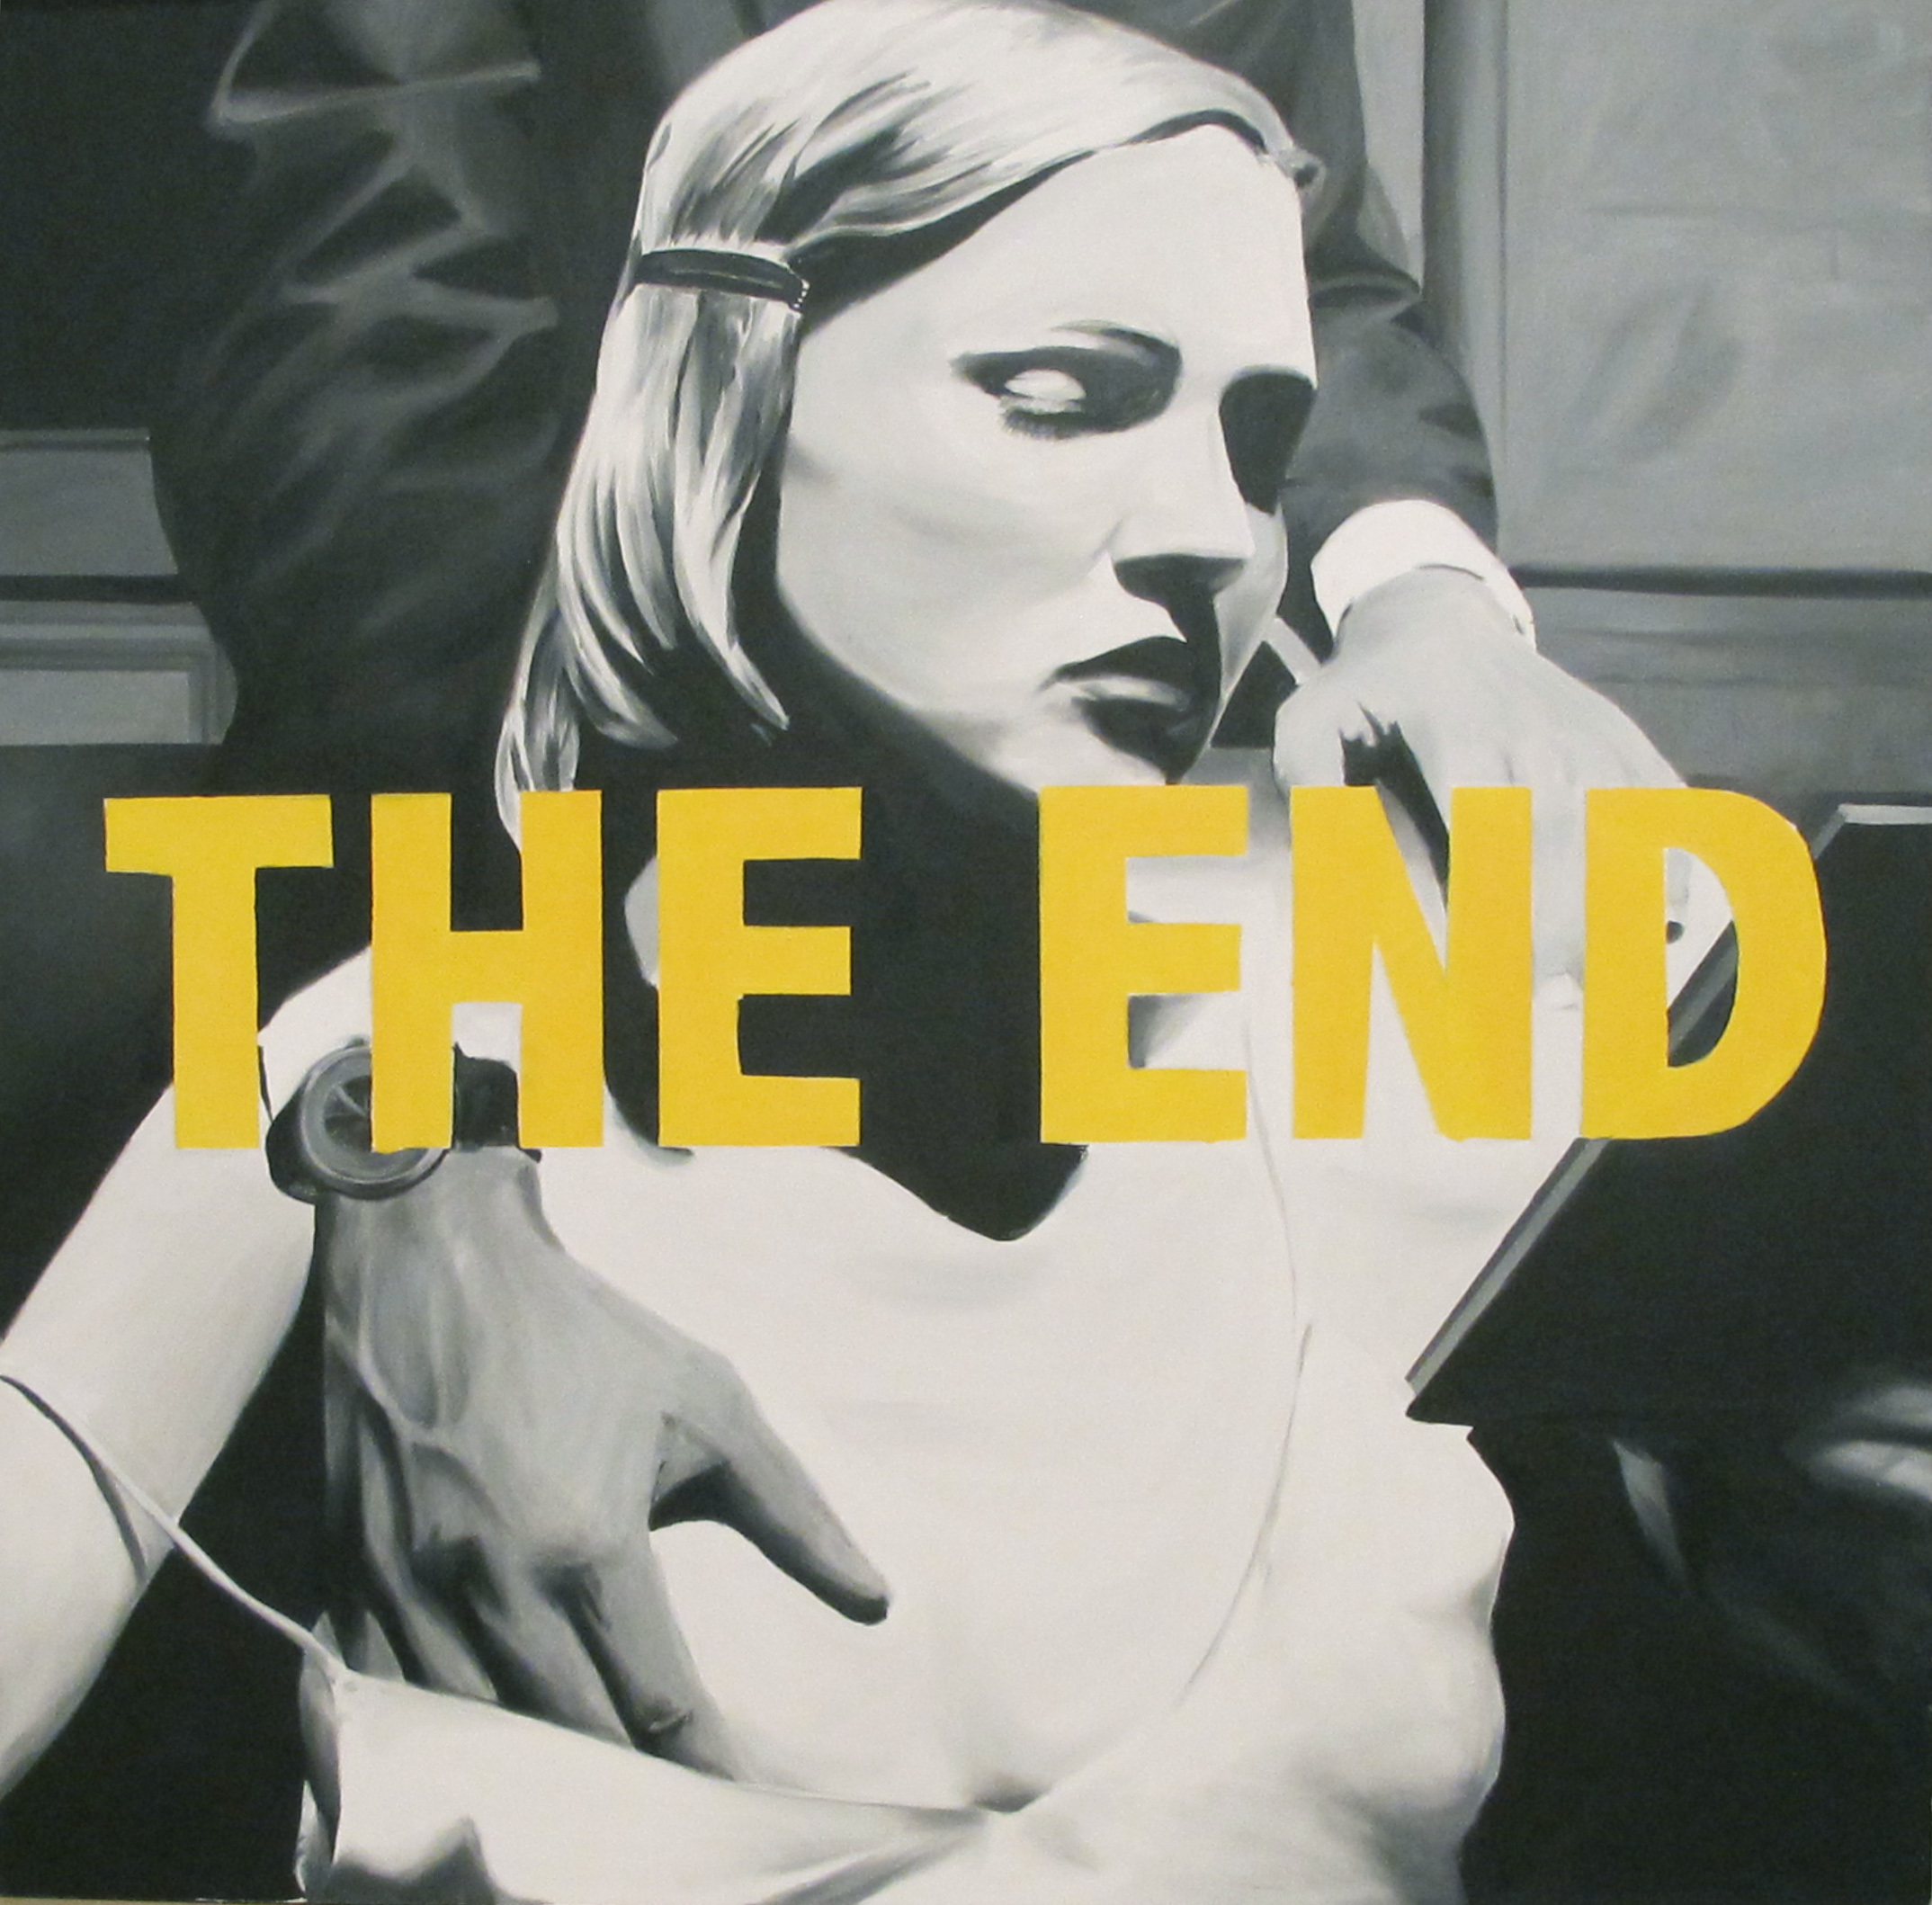 The End Ana Riaño